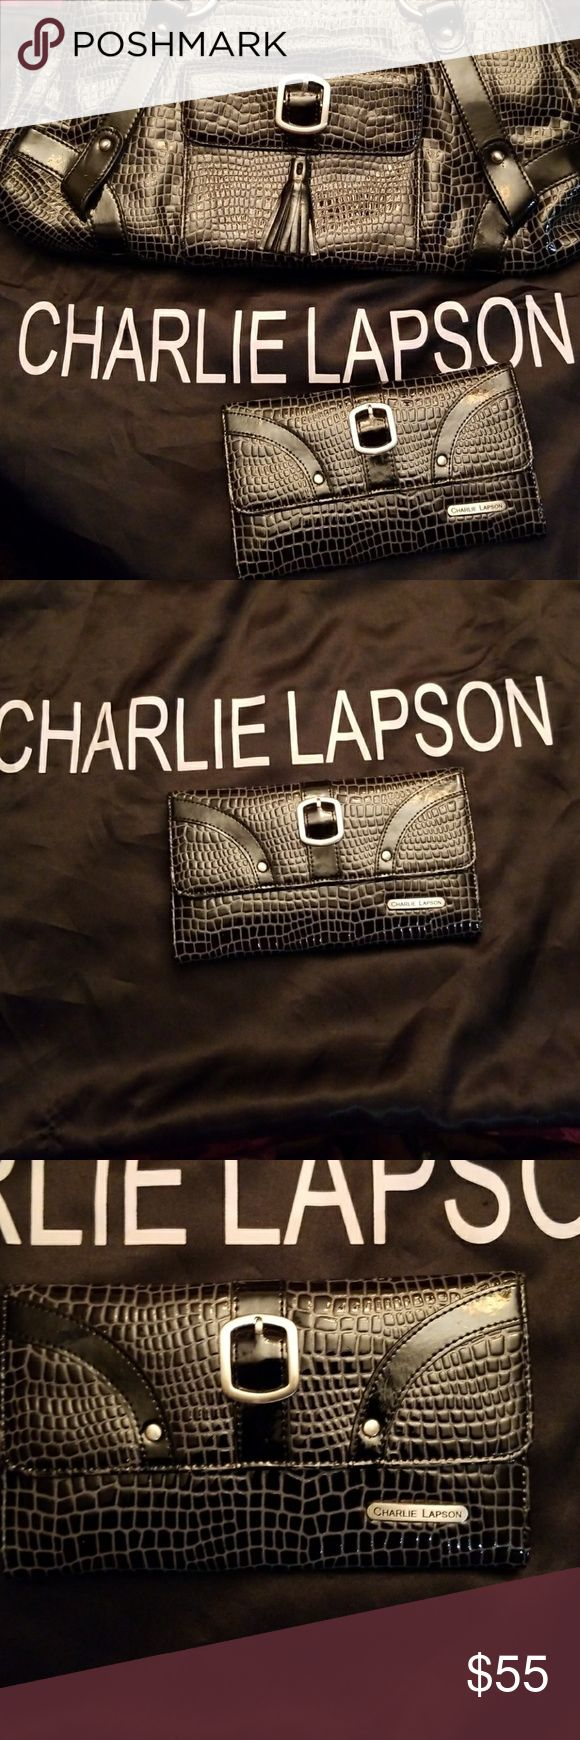 Charlie Lapson Wallet Black & gray Reptile embossed leather wallet features 12 slot card holder and checkbook with outside zipper. Gently worn twice. Like new!  Charlie Lapson is known for creating uniquely designed handbags for the stars! An exclusively made wallet for formerly known Shop Nbc. Charlie Lapson Bags Wallets